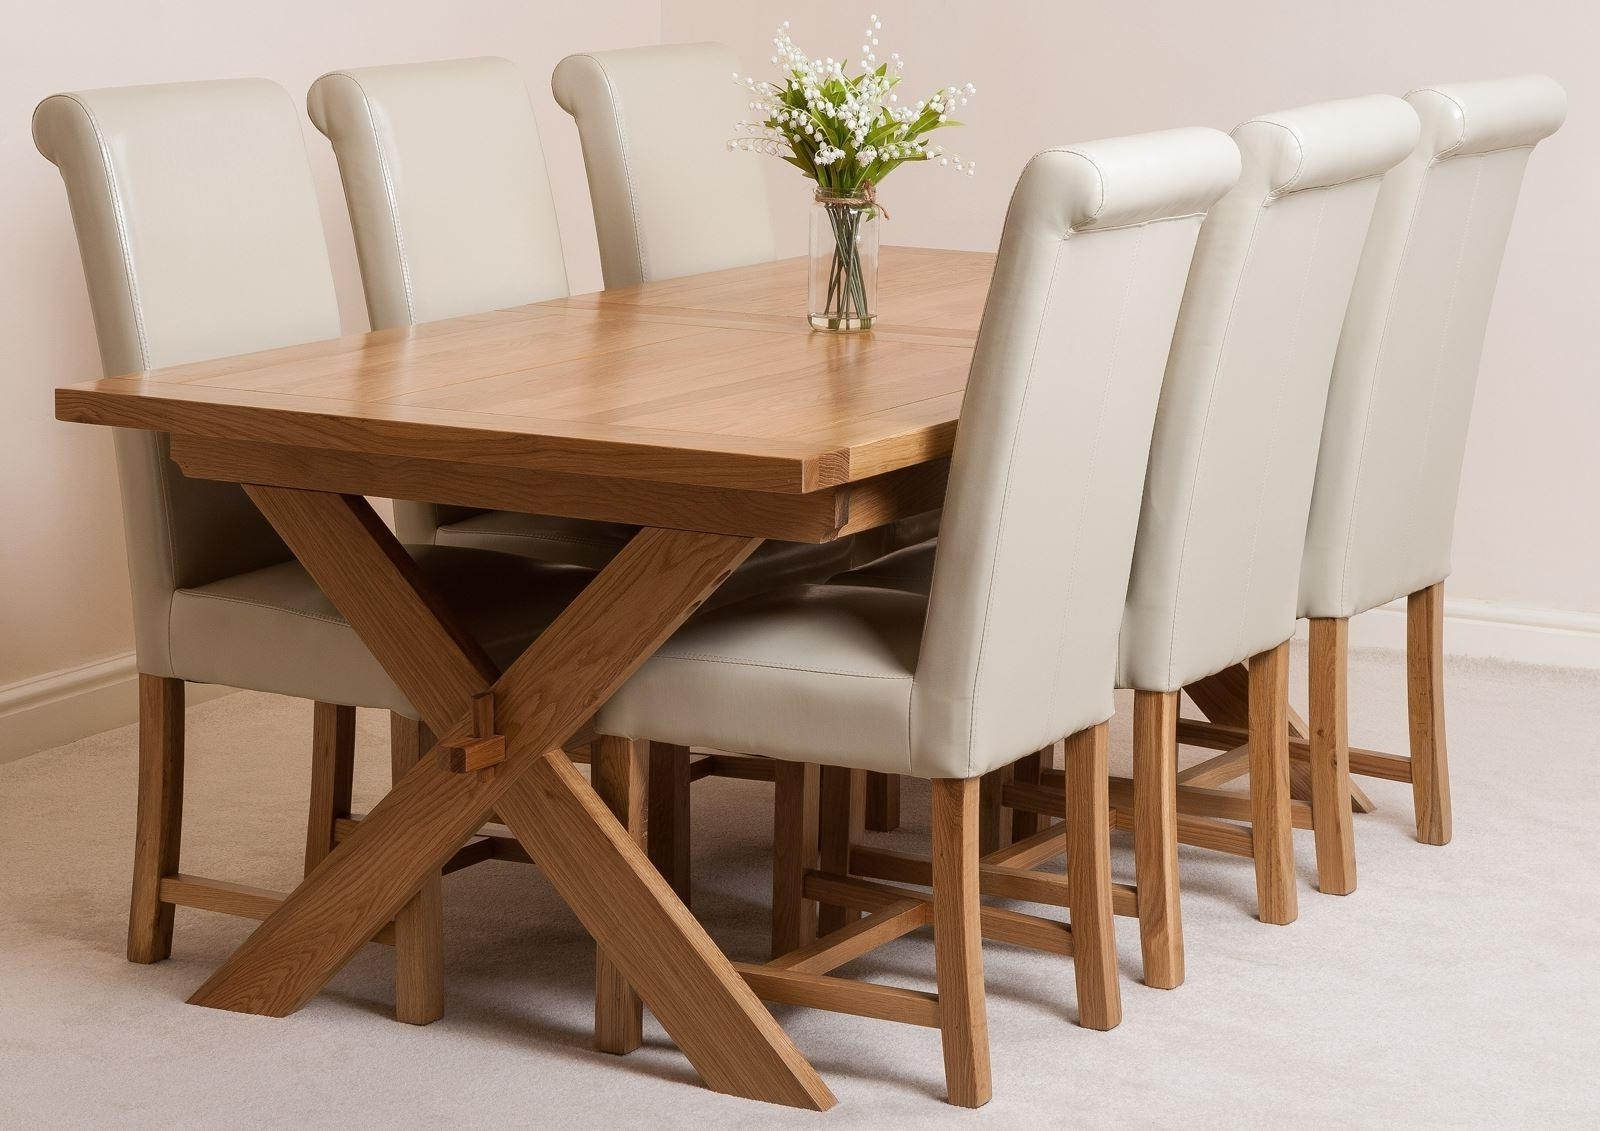 Oak Furniture King Regarding Well Known Oak Dining Tables With 6 Chairs (View 6 of 25)